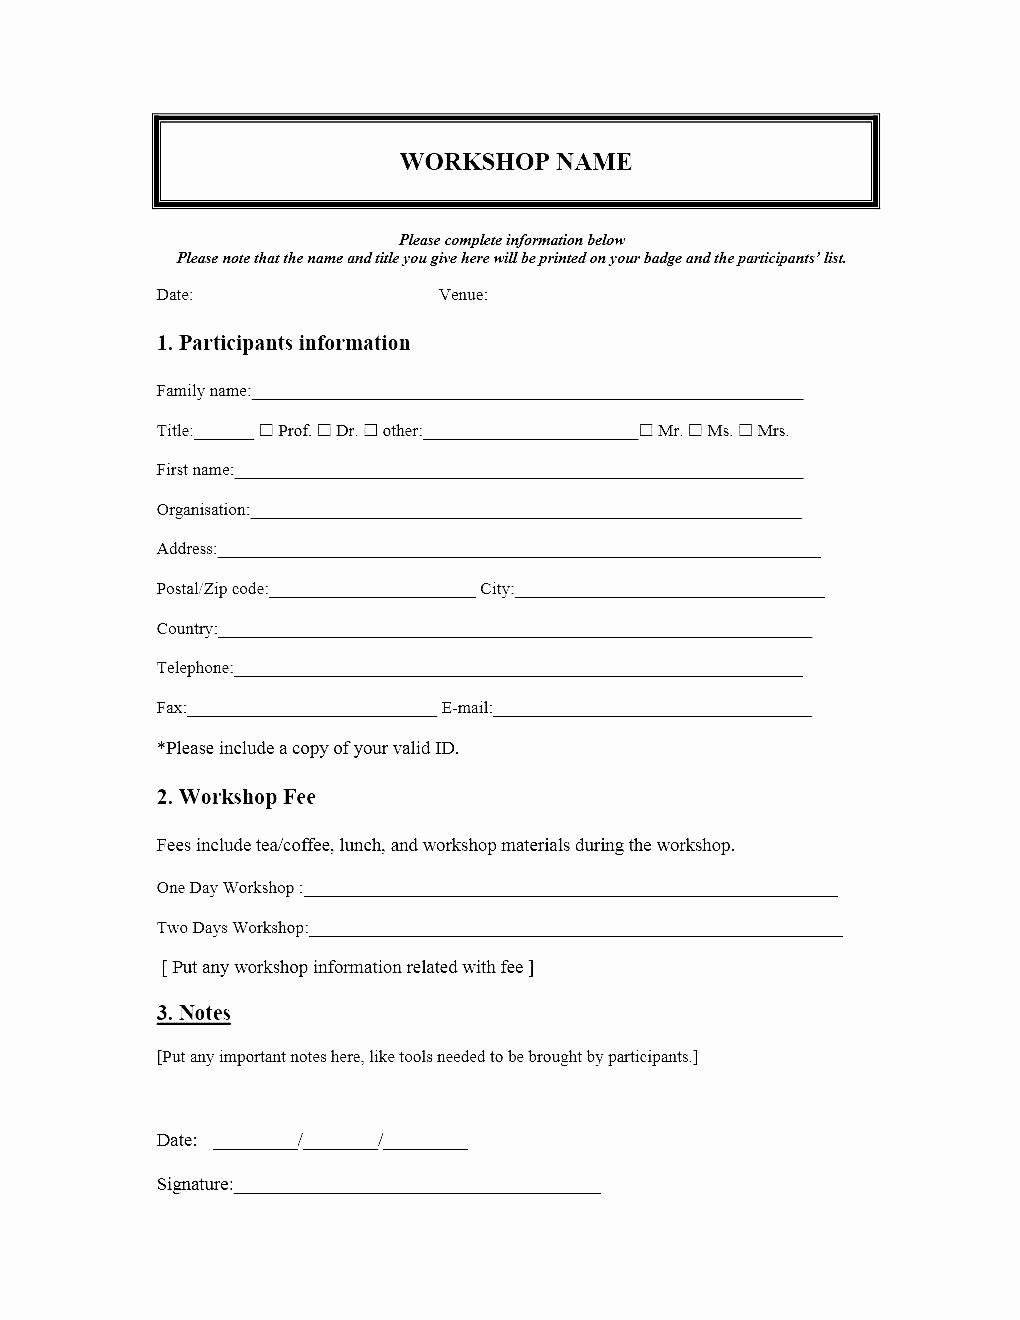 Registration forms Template Word Fresh event Registration form Template Microsoft Word